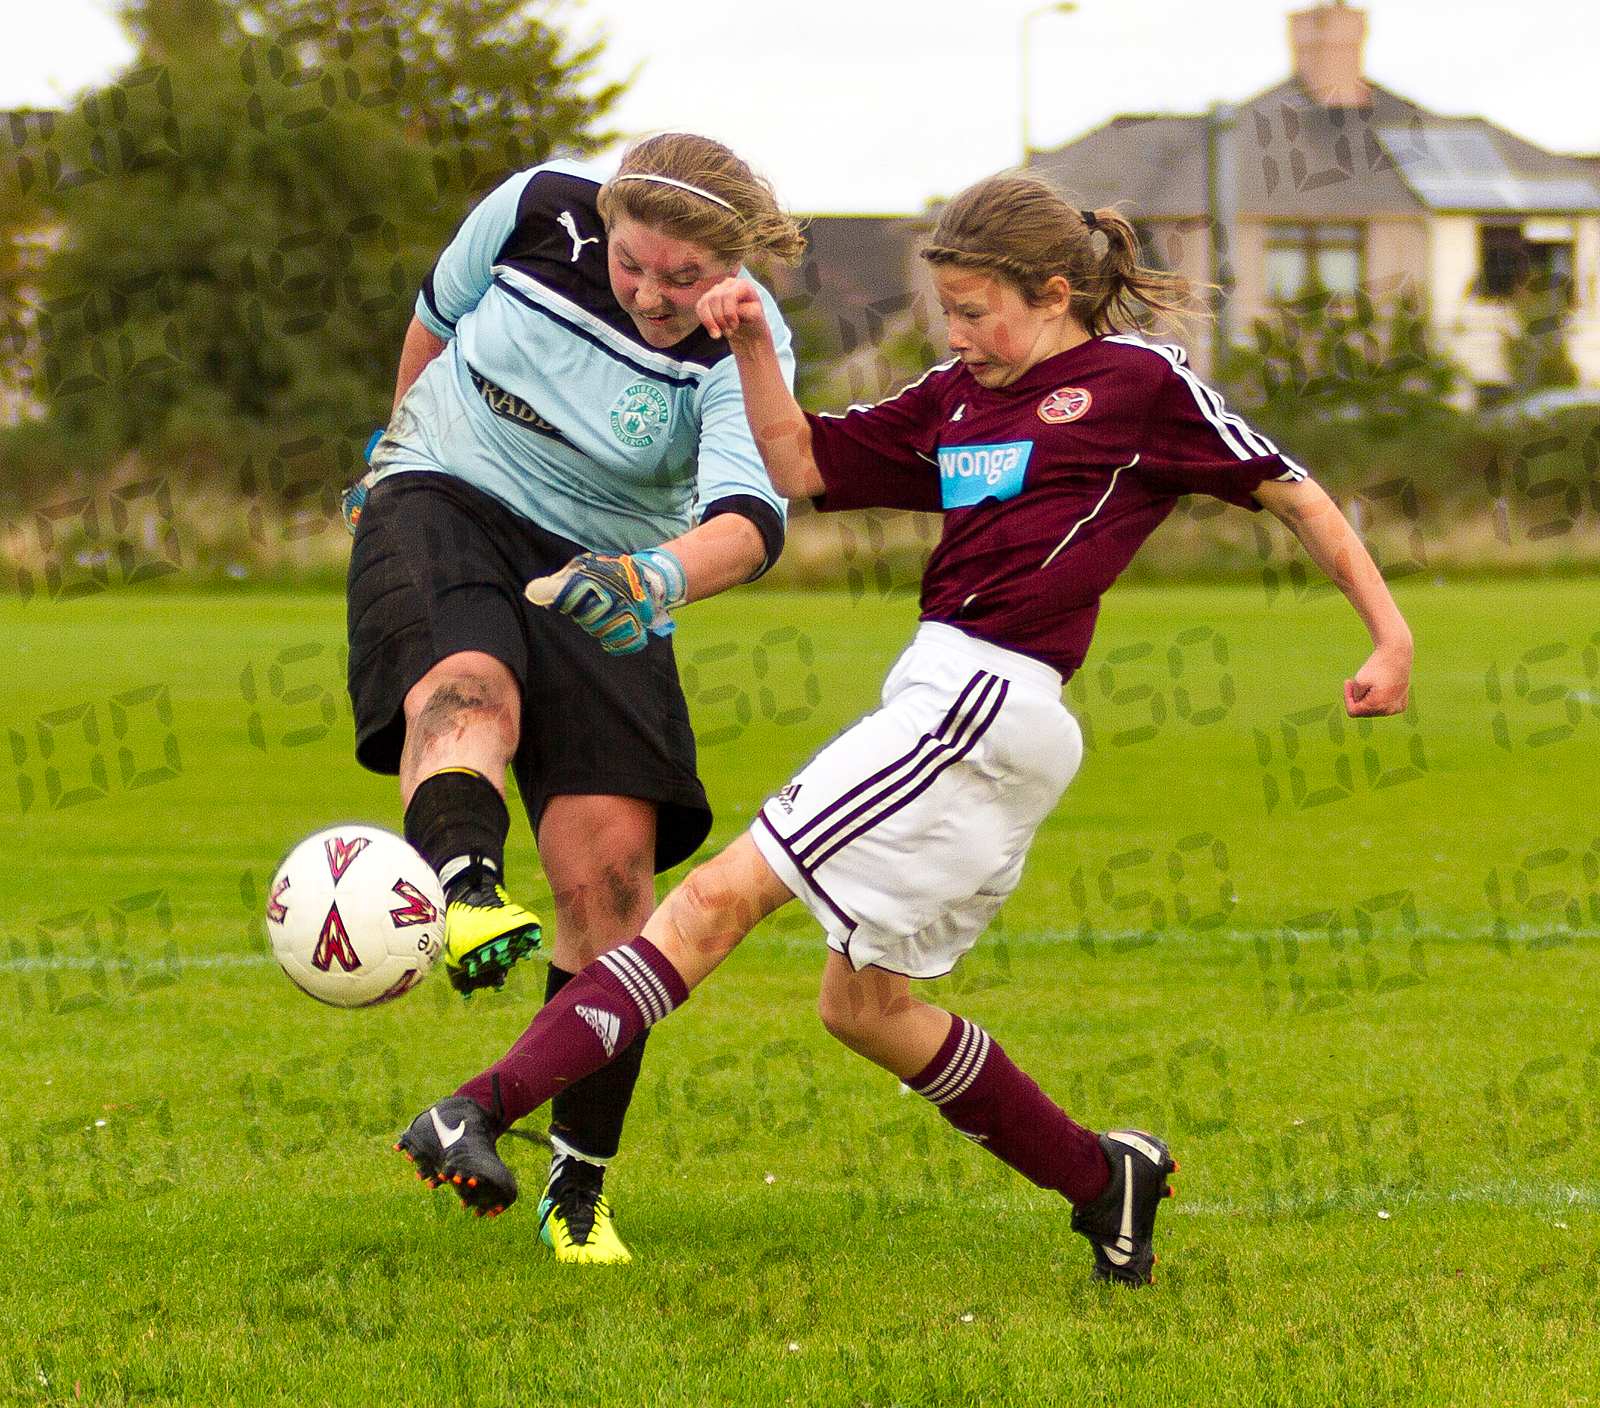 Hibs_v_Hearts_girls_13s-27.jpg